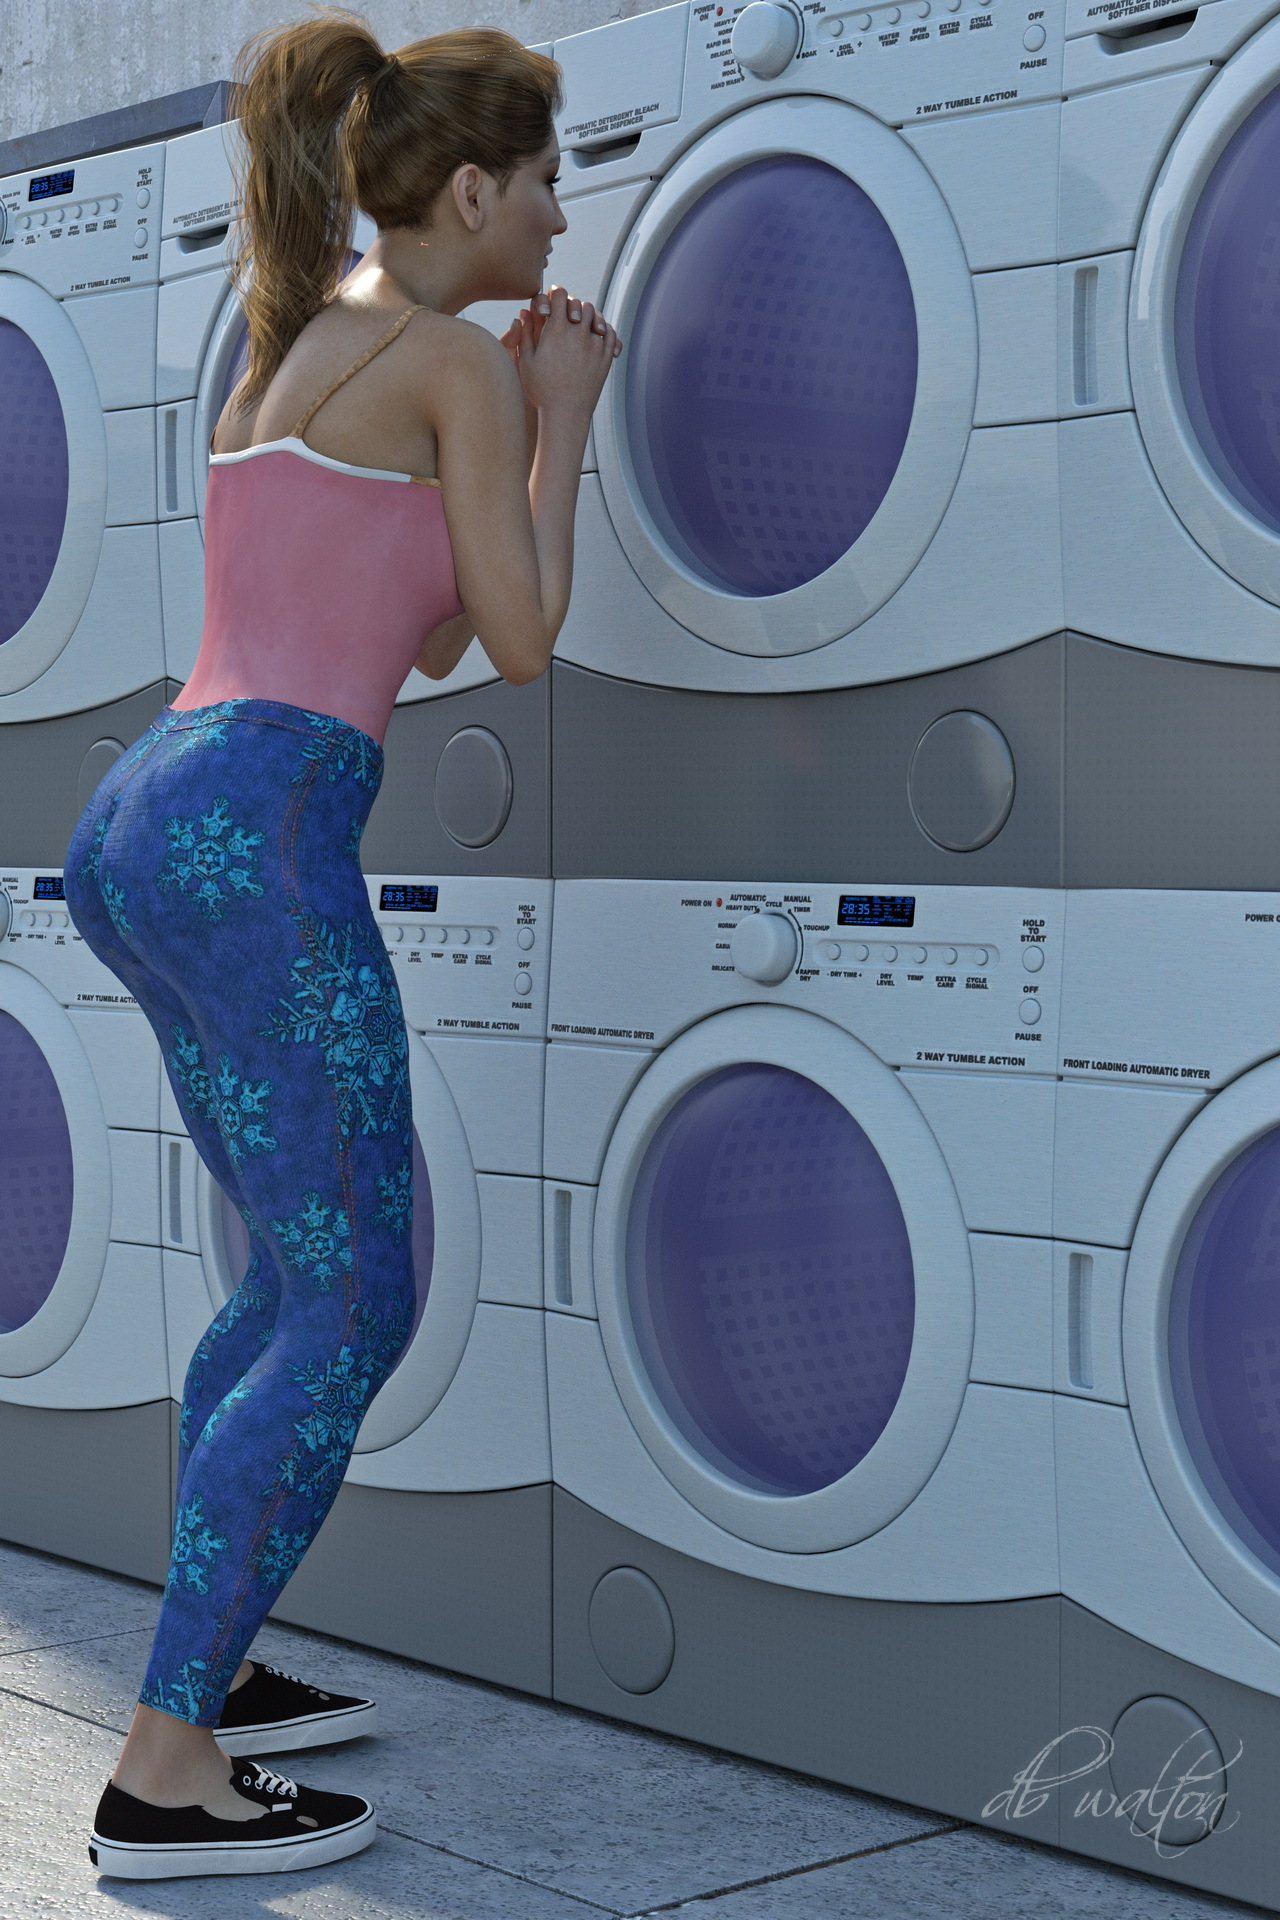 Laundry Day - 2 by dbwalton